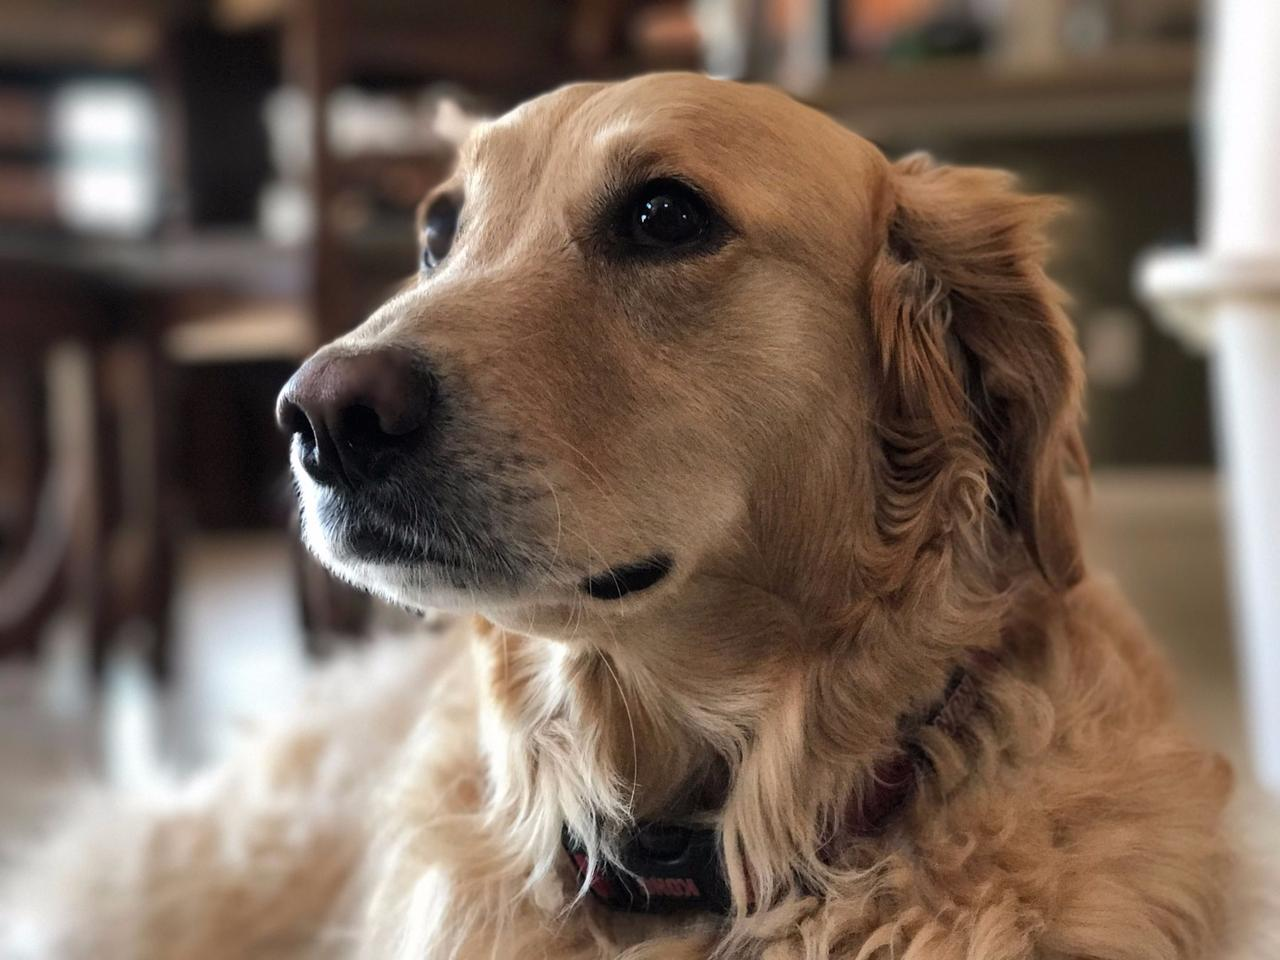 The background bokeh (blur) in this Portrait mode-shot image ensures that the dog's face is the emphasis of the photo